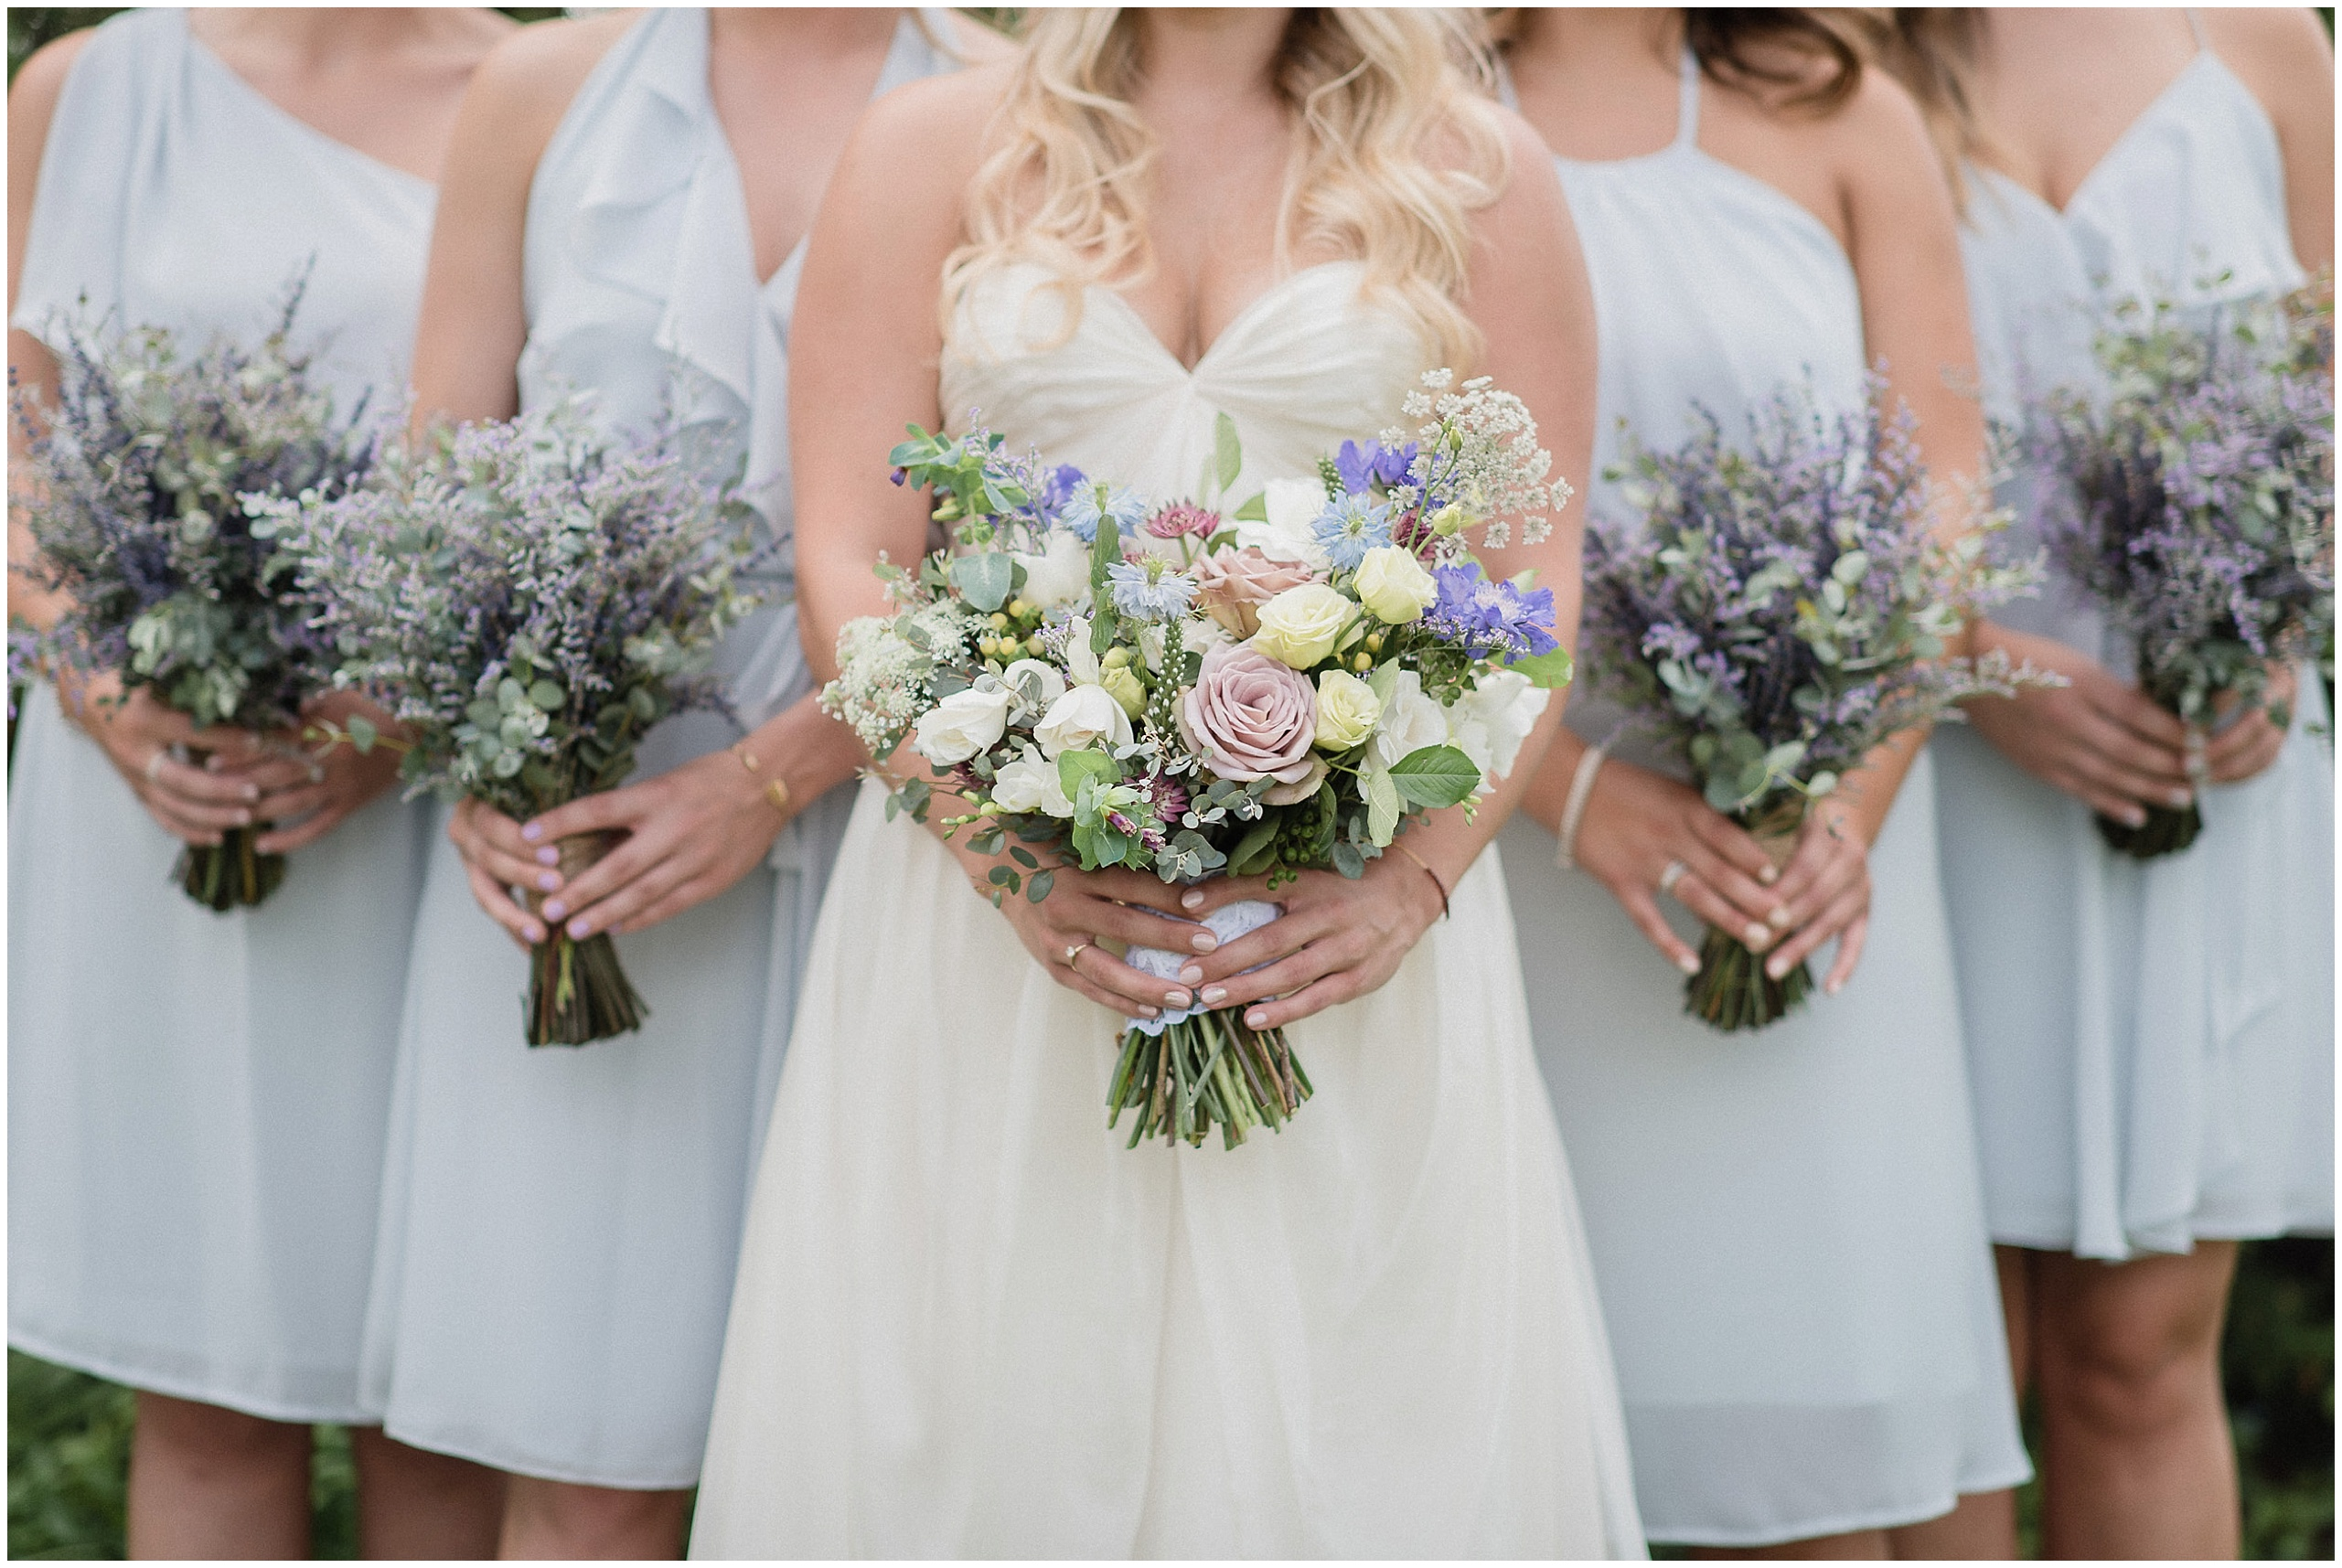 Pastel, garden inspired bouquet by Coriander Girl and dried lavender bunches, photographed by Jenn Kavanagh Photography